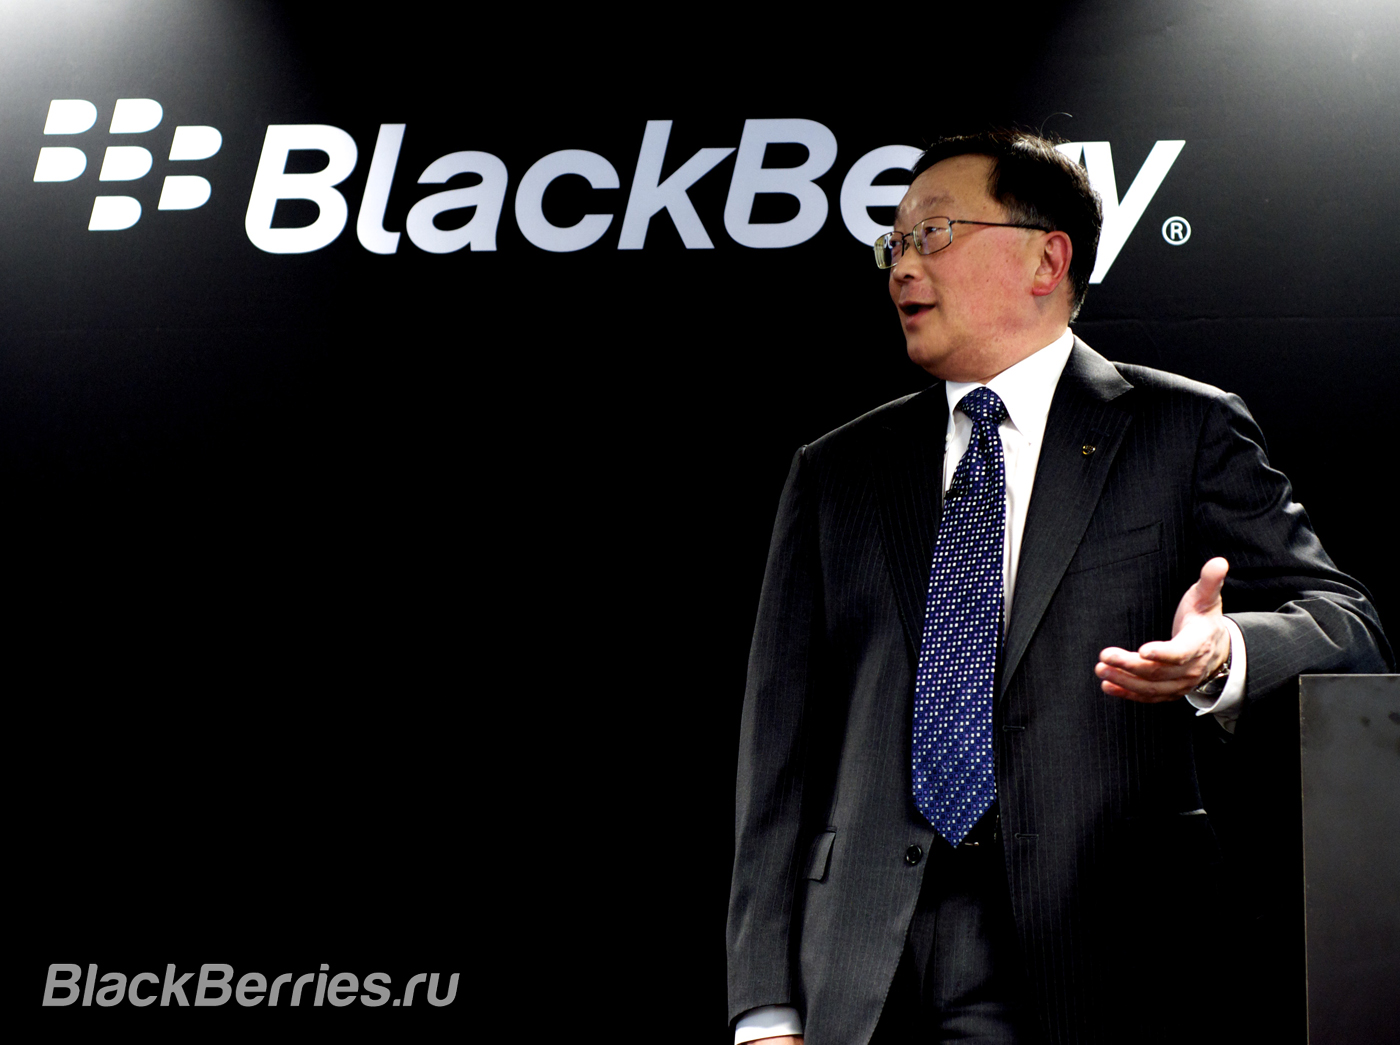 BlackBerry-MWC2015-02